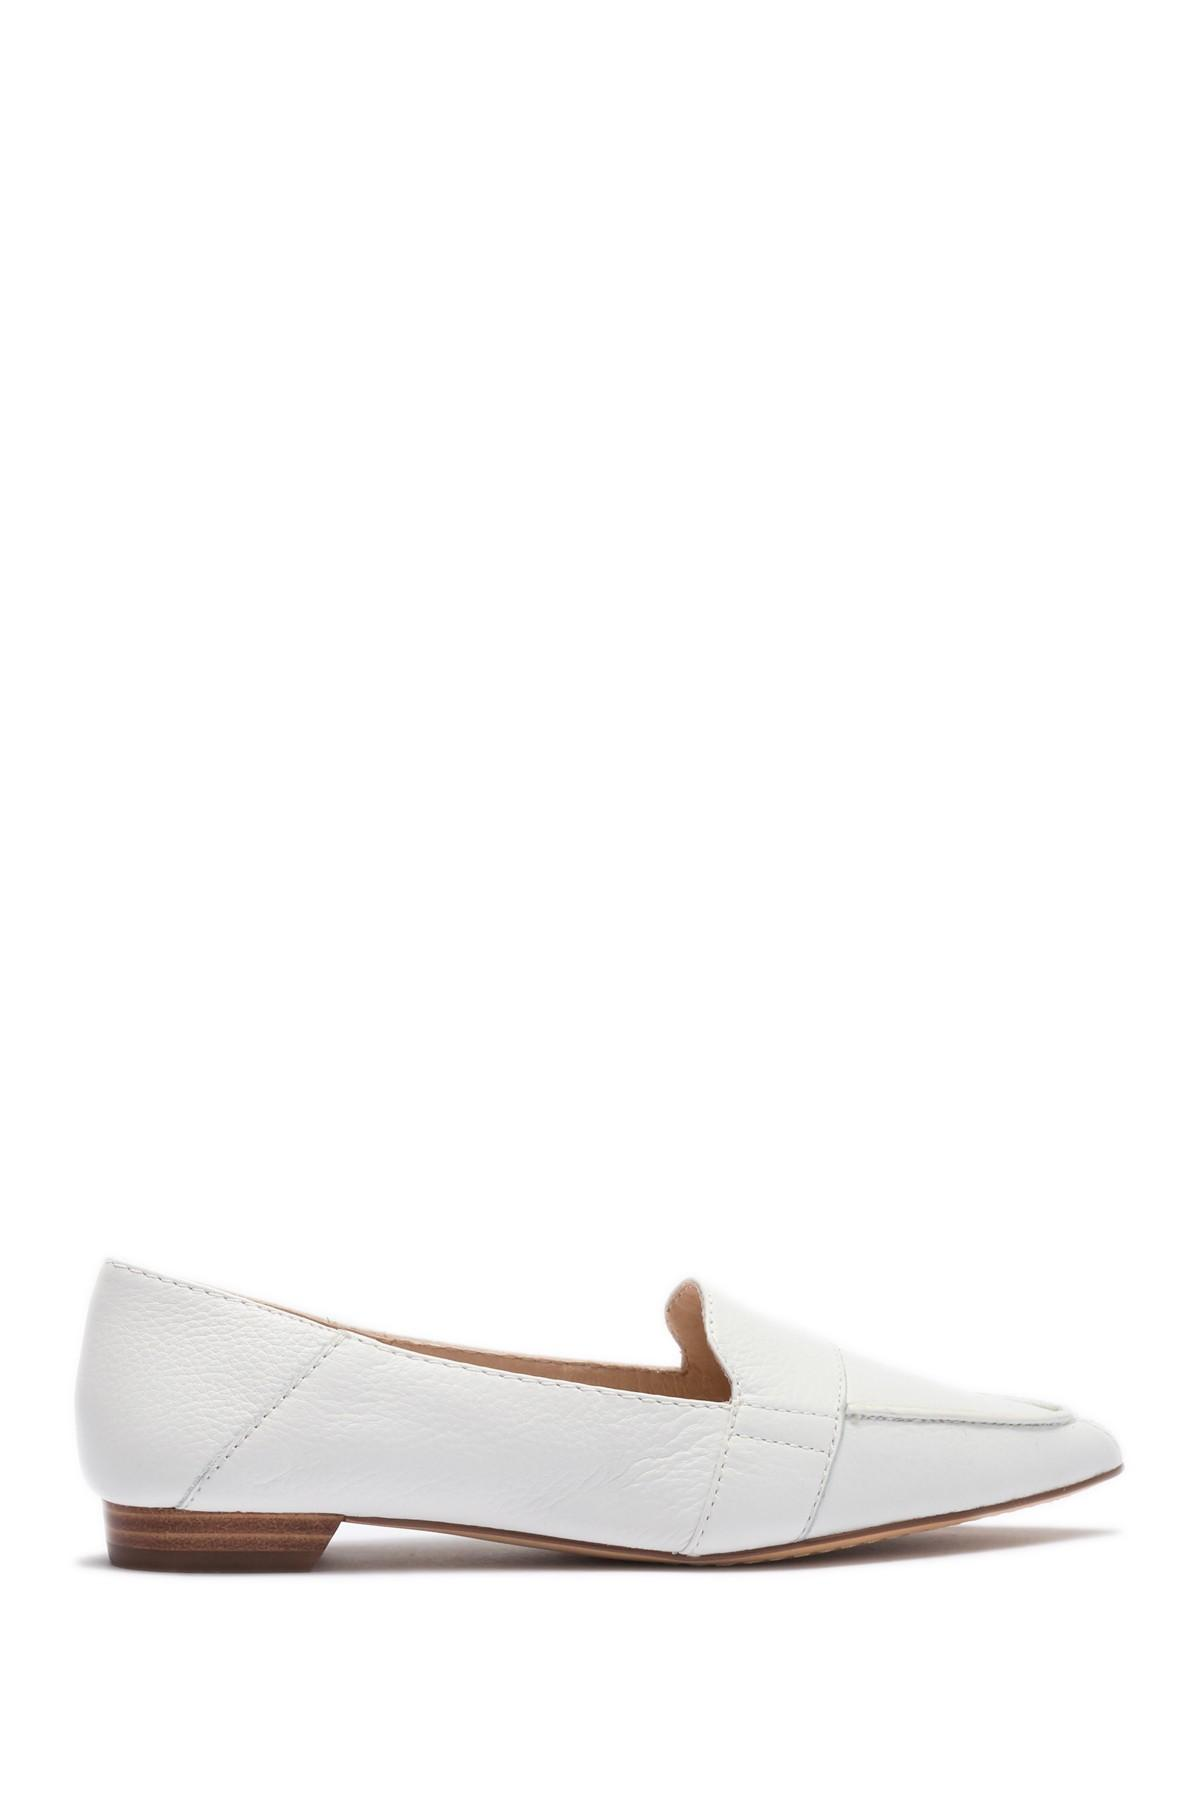 fb607586c5b Lyst - Vince Camuto Maita Pointy Toe Flat in White